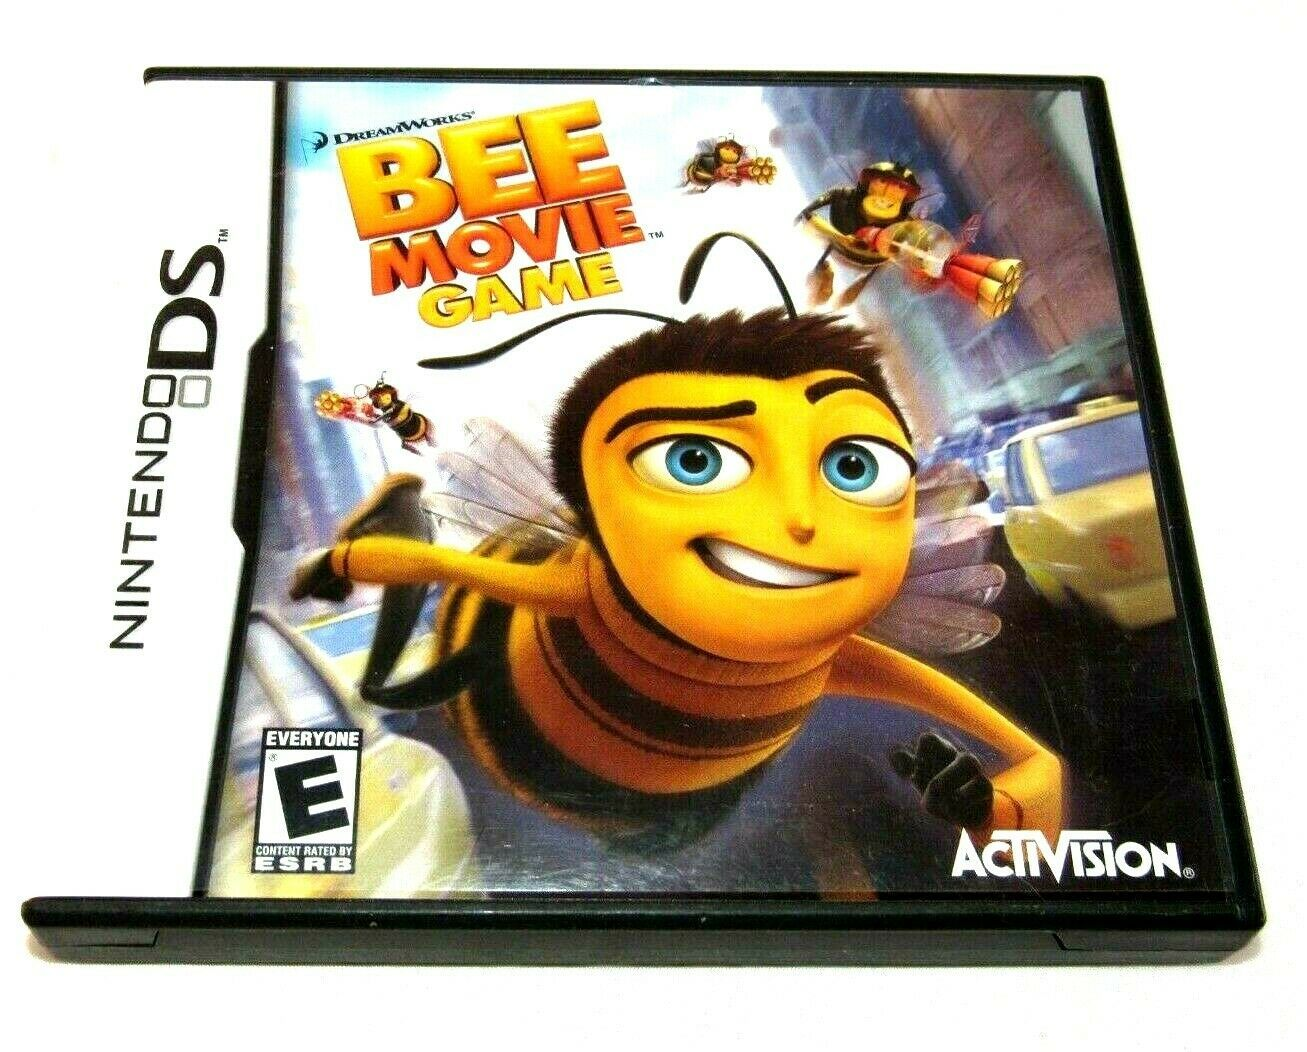 Primary image for Bee Movie Game (Nintendo DS, 2007)